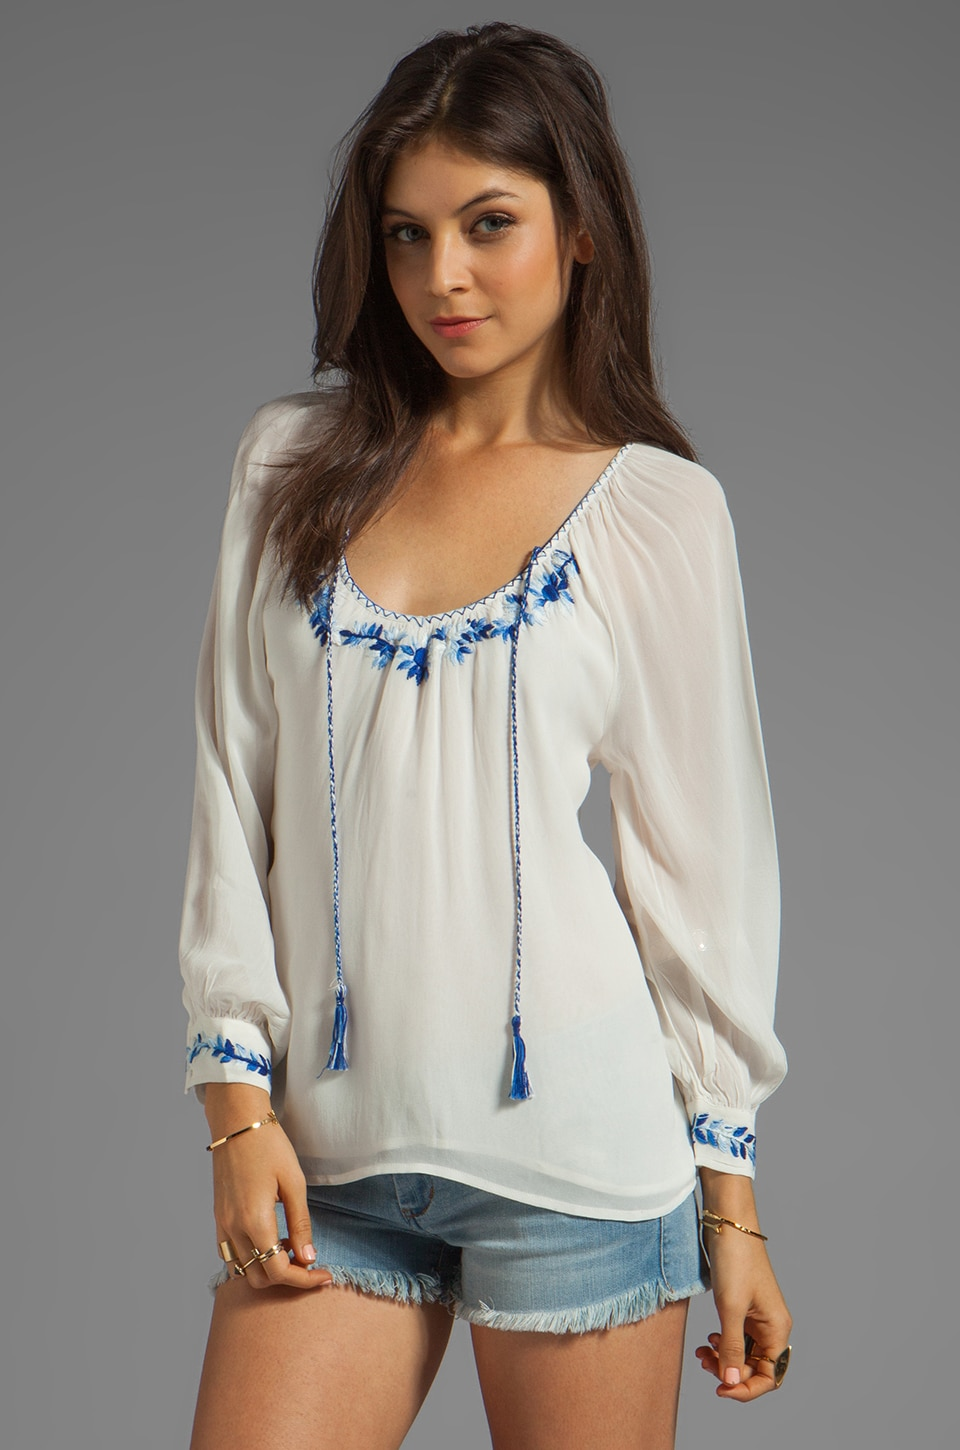 Sanctuary Provence Blues Embroidered Gypsy Top in White